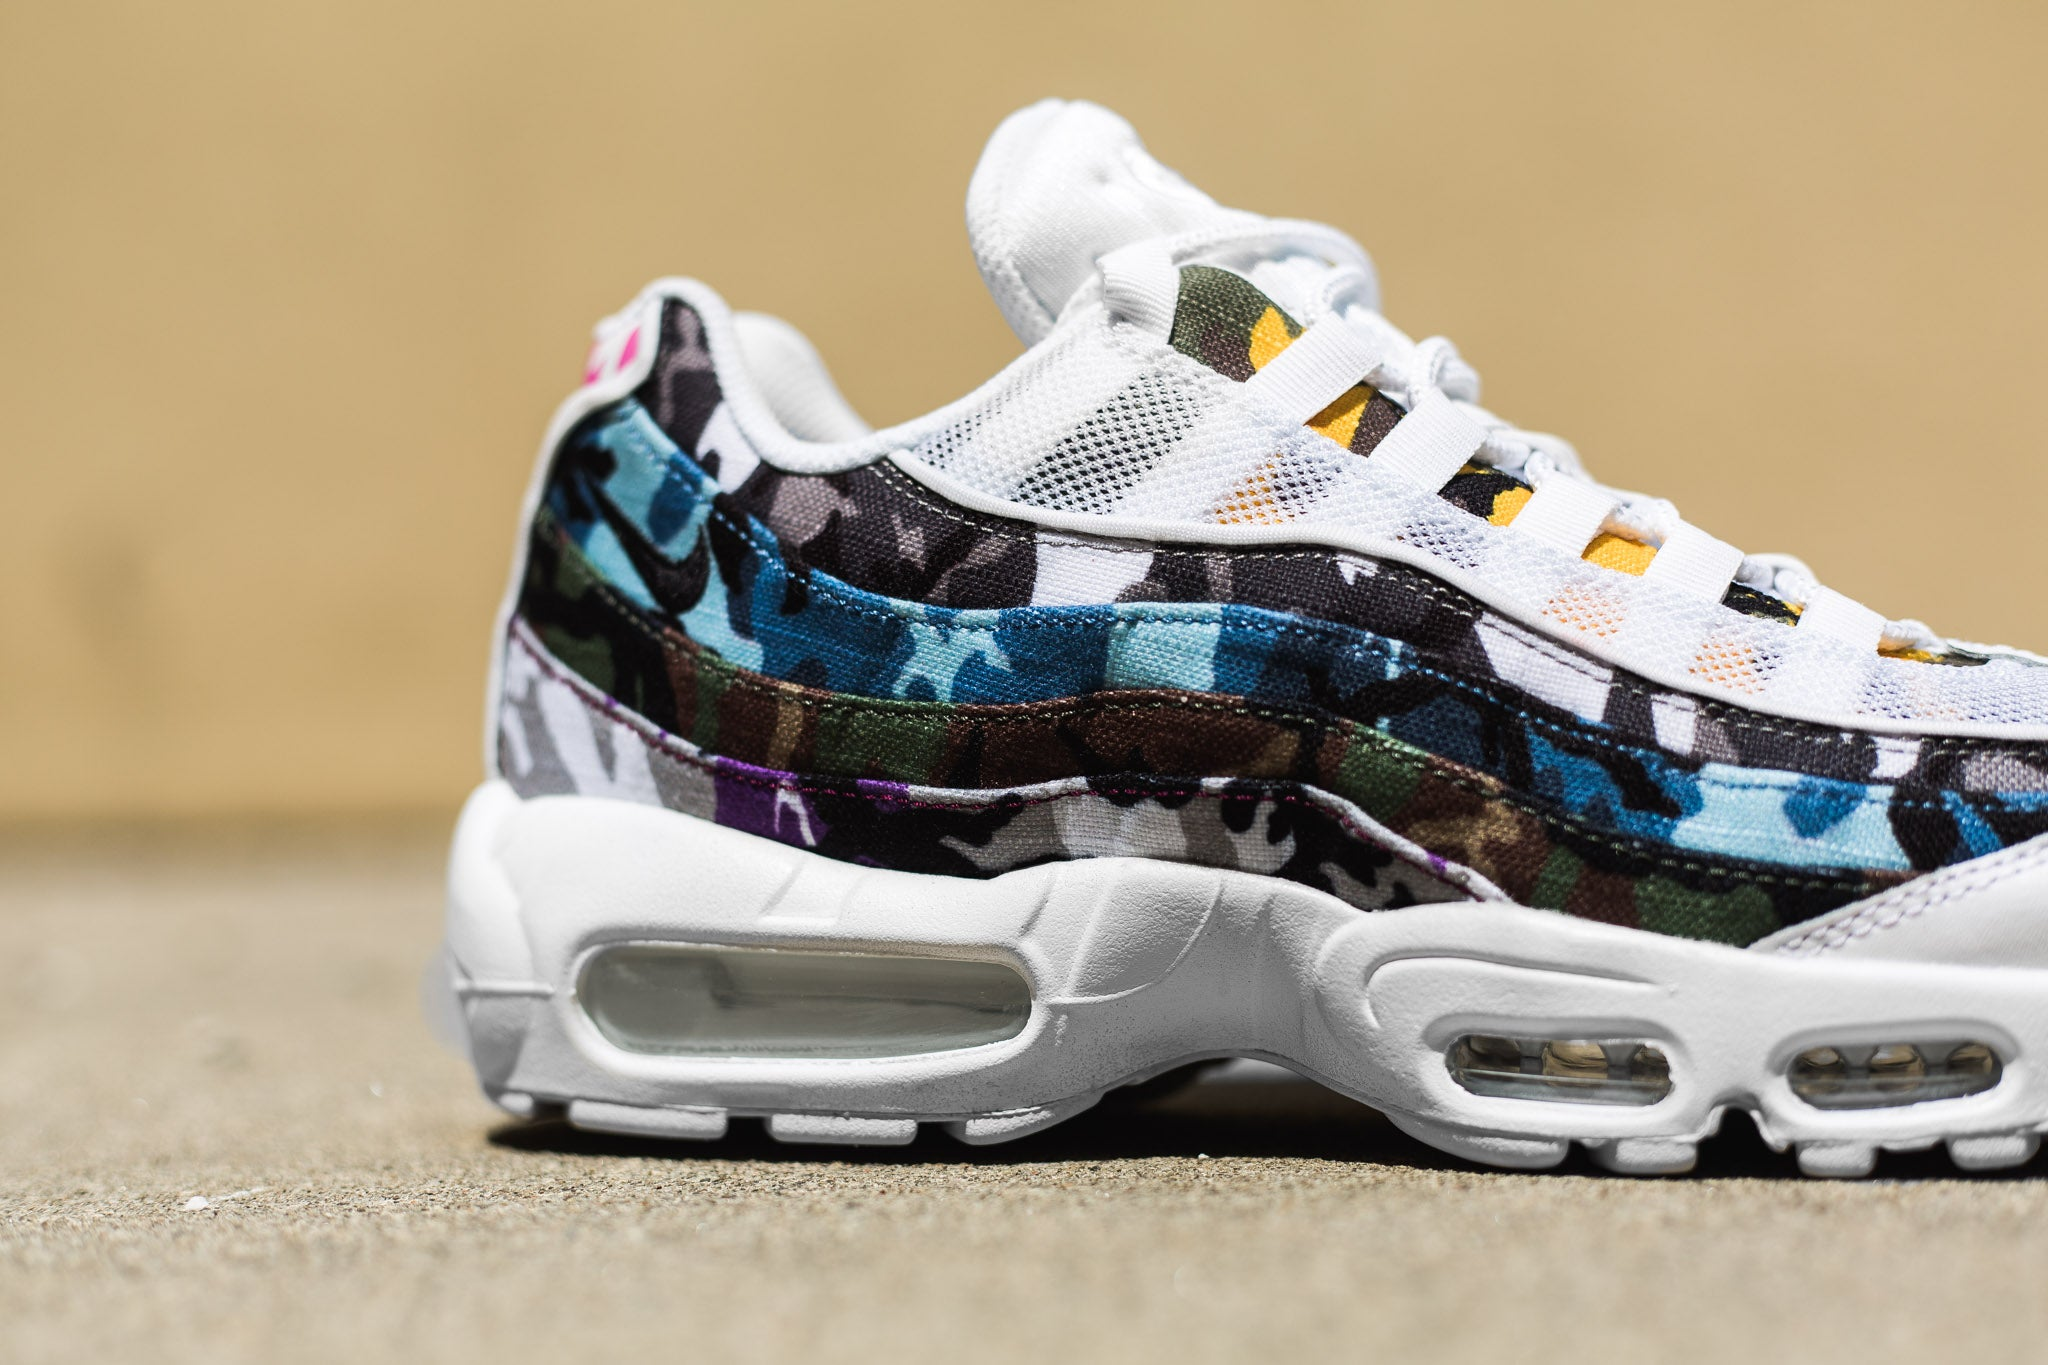 b0e056d1d707 Nike Air Max 95 ERDL Party 08.04.18 – Capsule Online